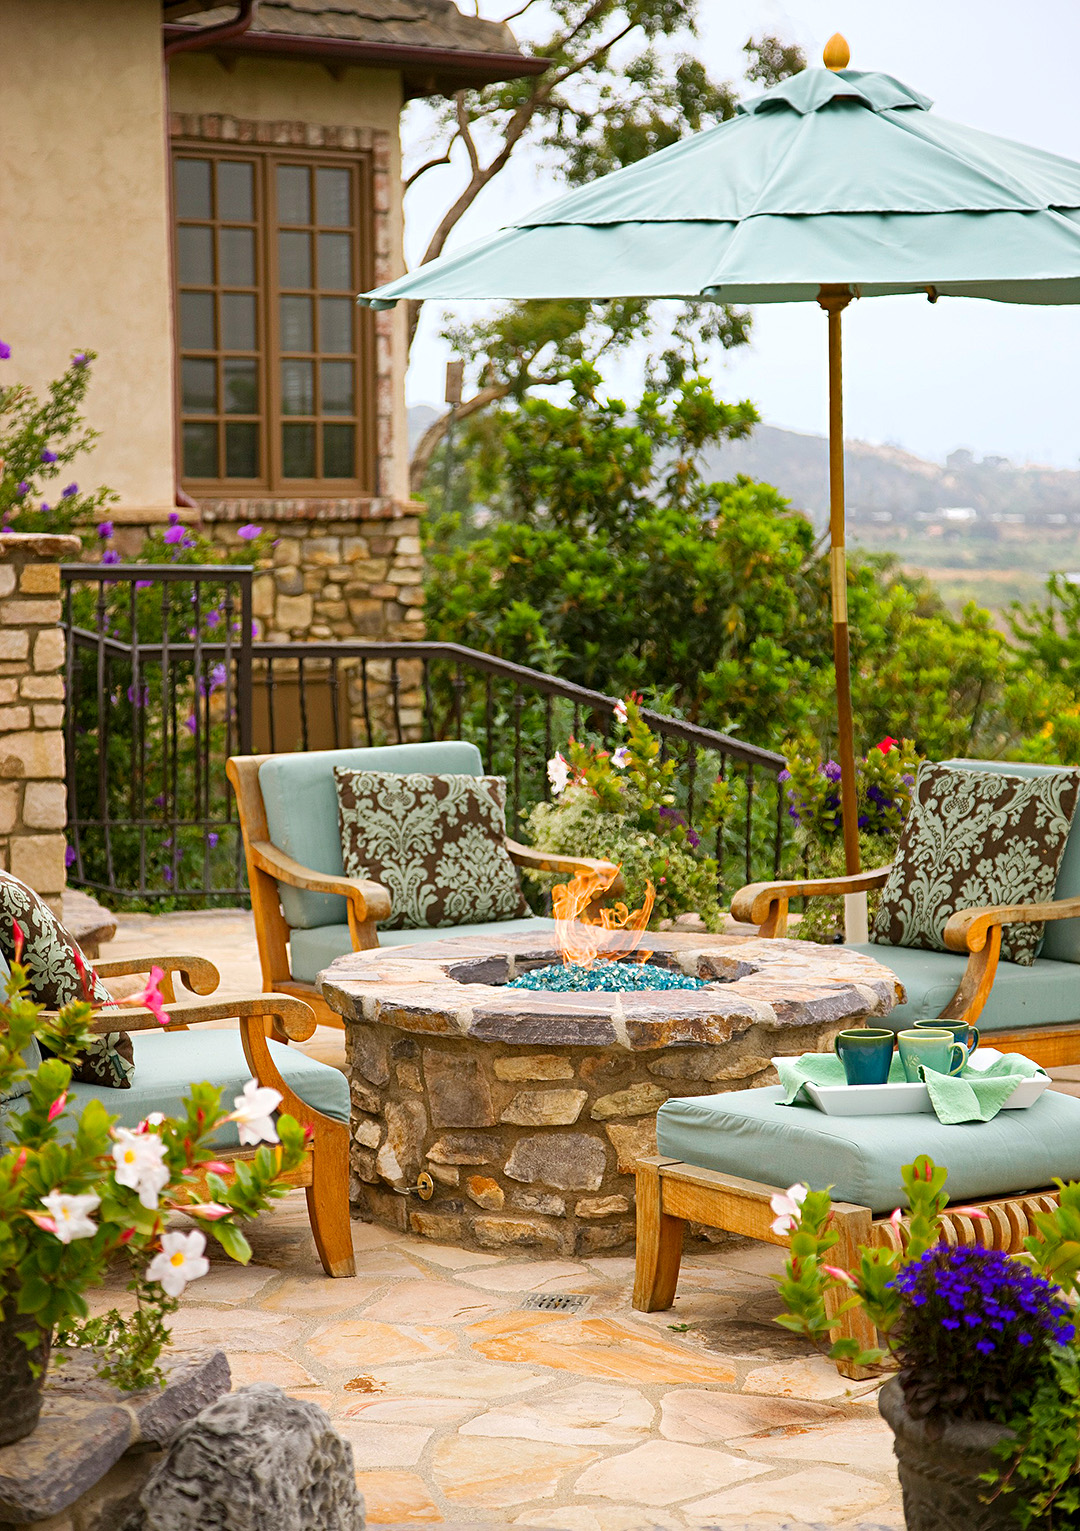 patio fire pit with outdoor chairs and teal cushions